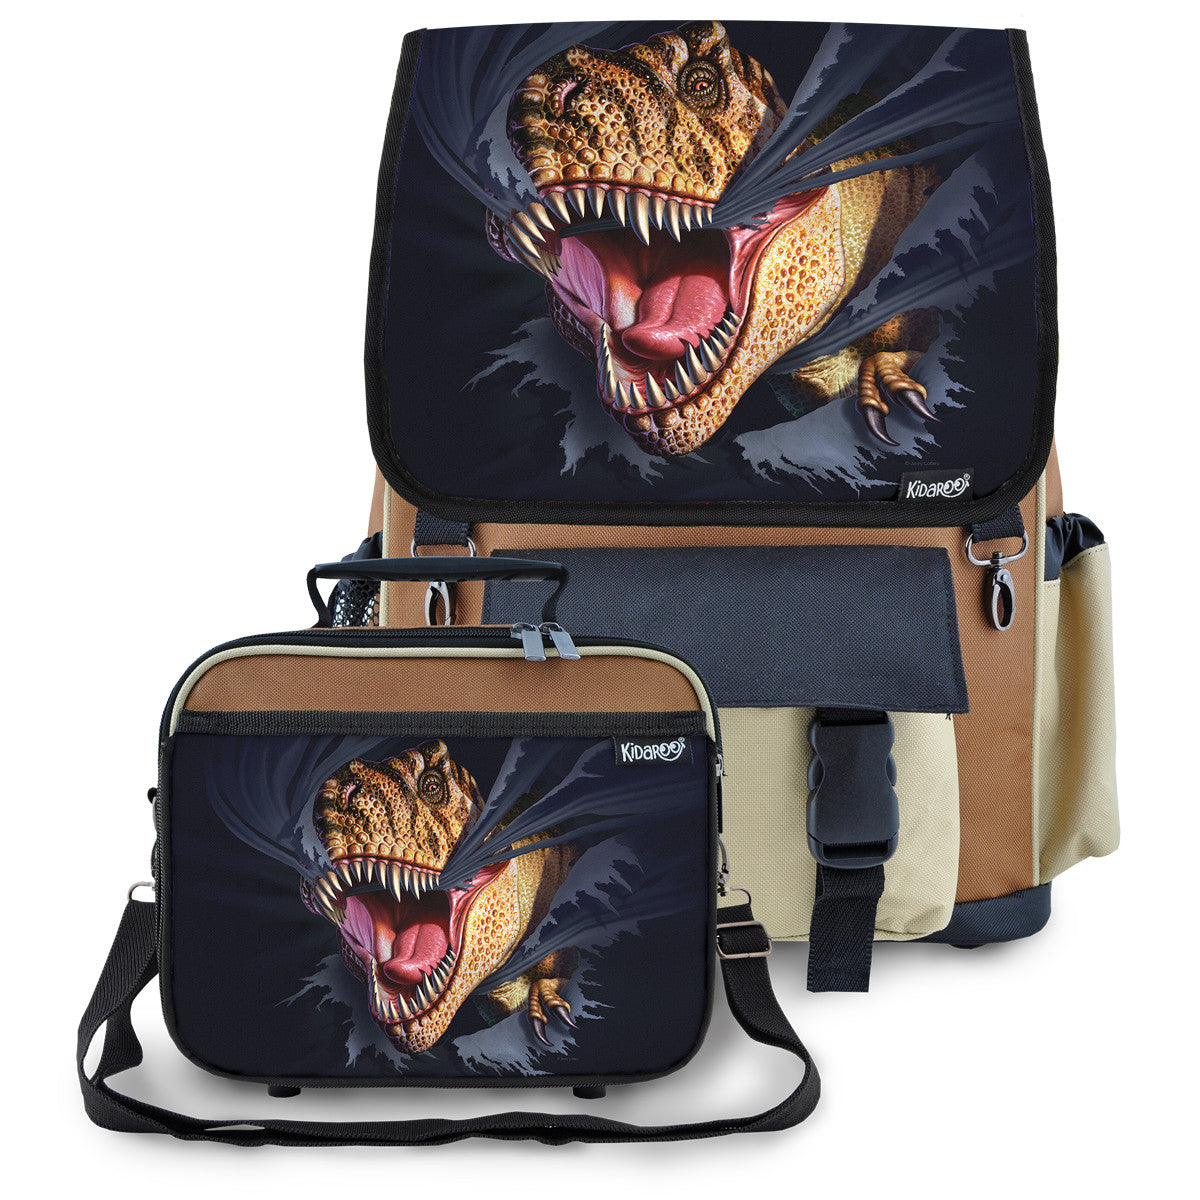 Kidaroo Brown Tearing T-Rex Dinosaur School Backpack & Lunchbox Set for Boys, Girls, Kids